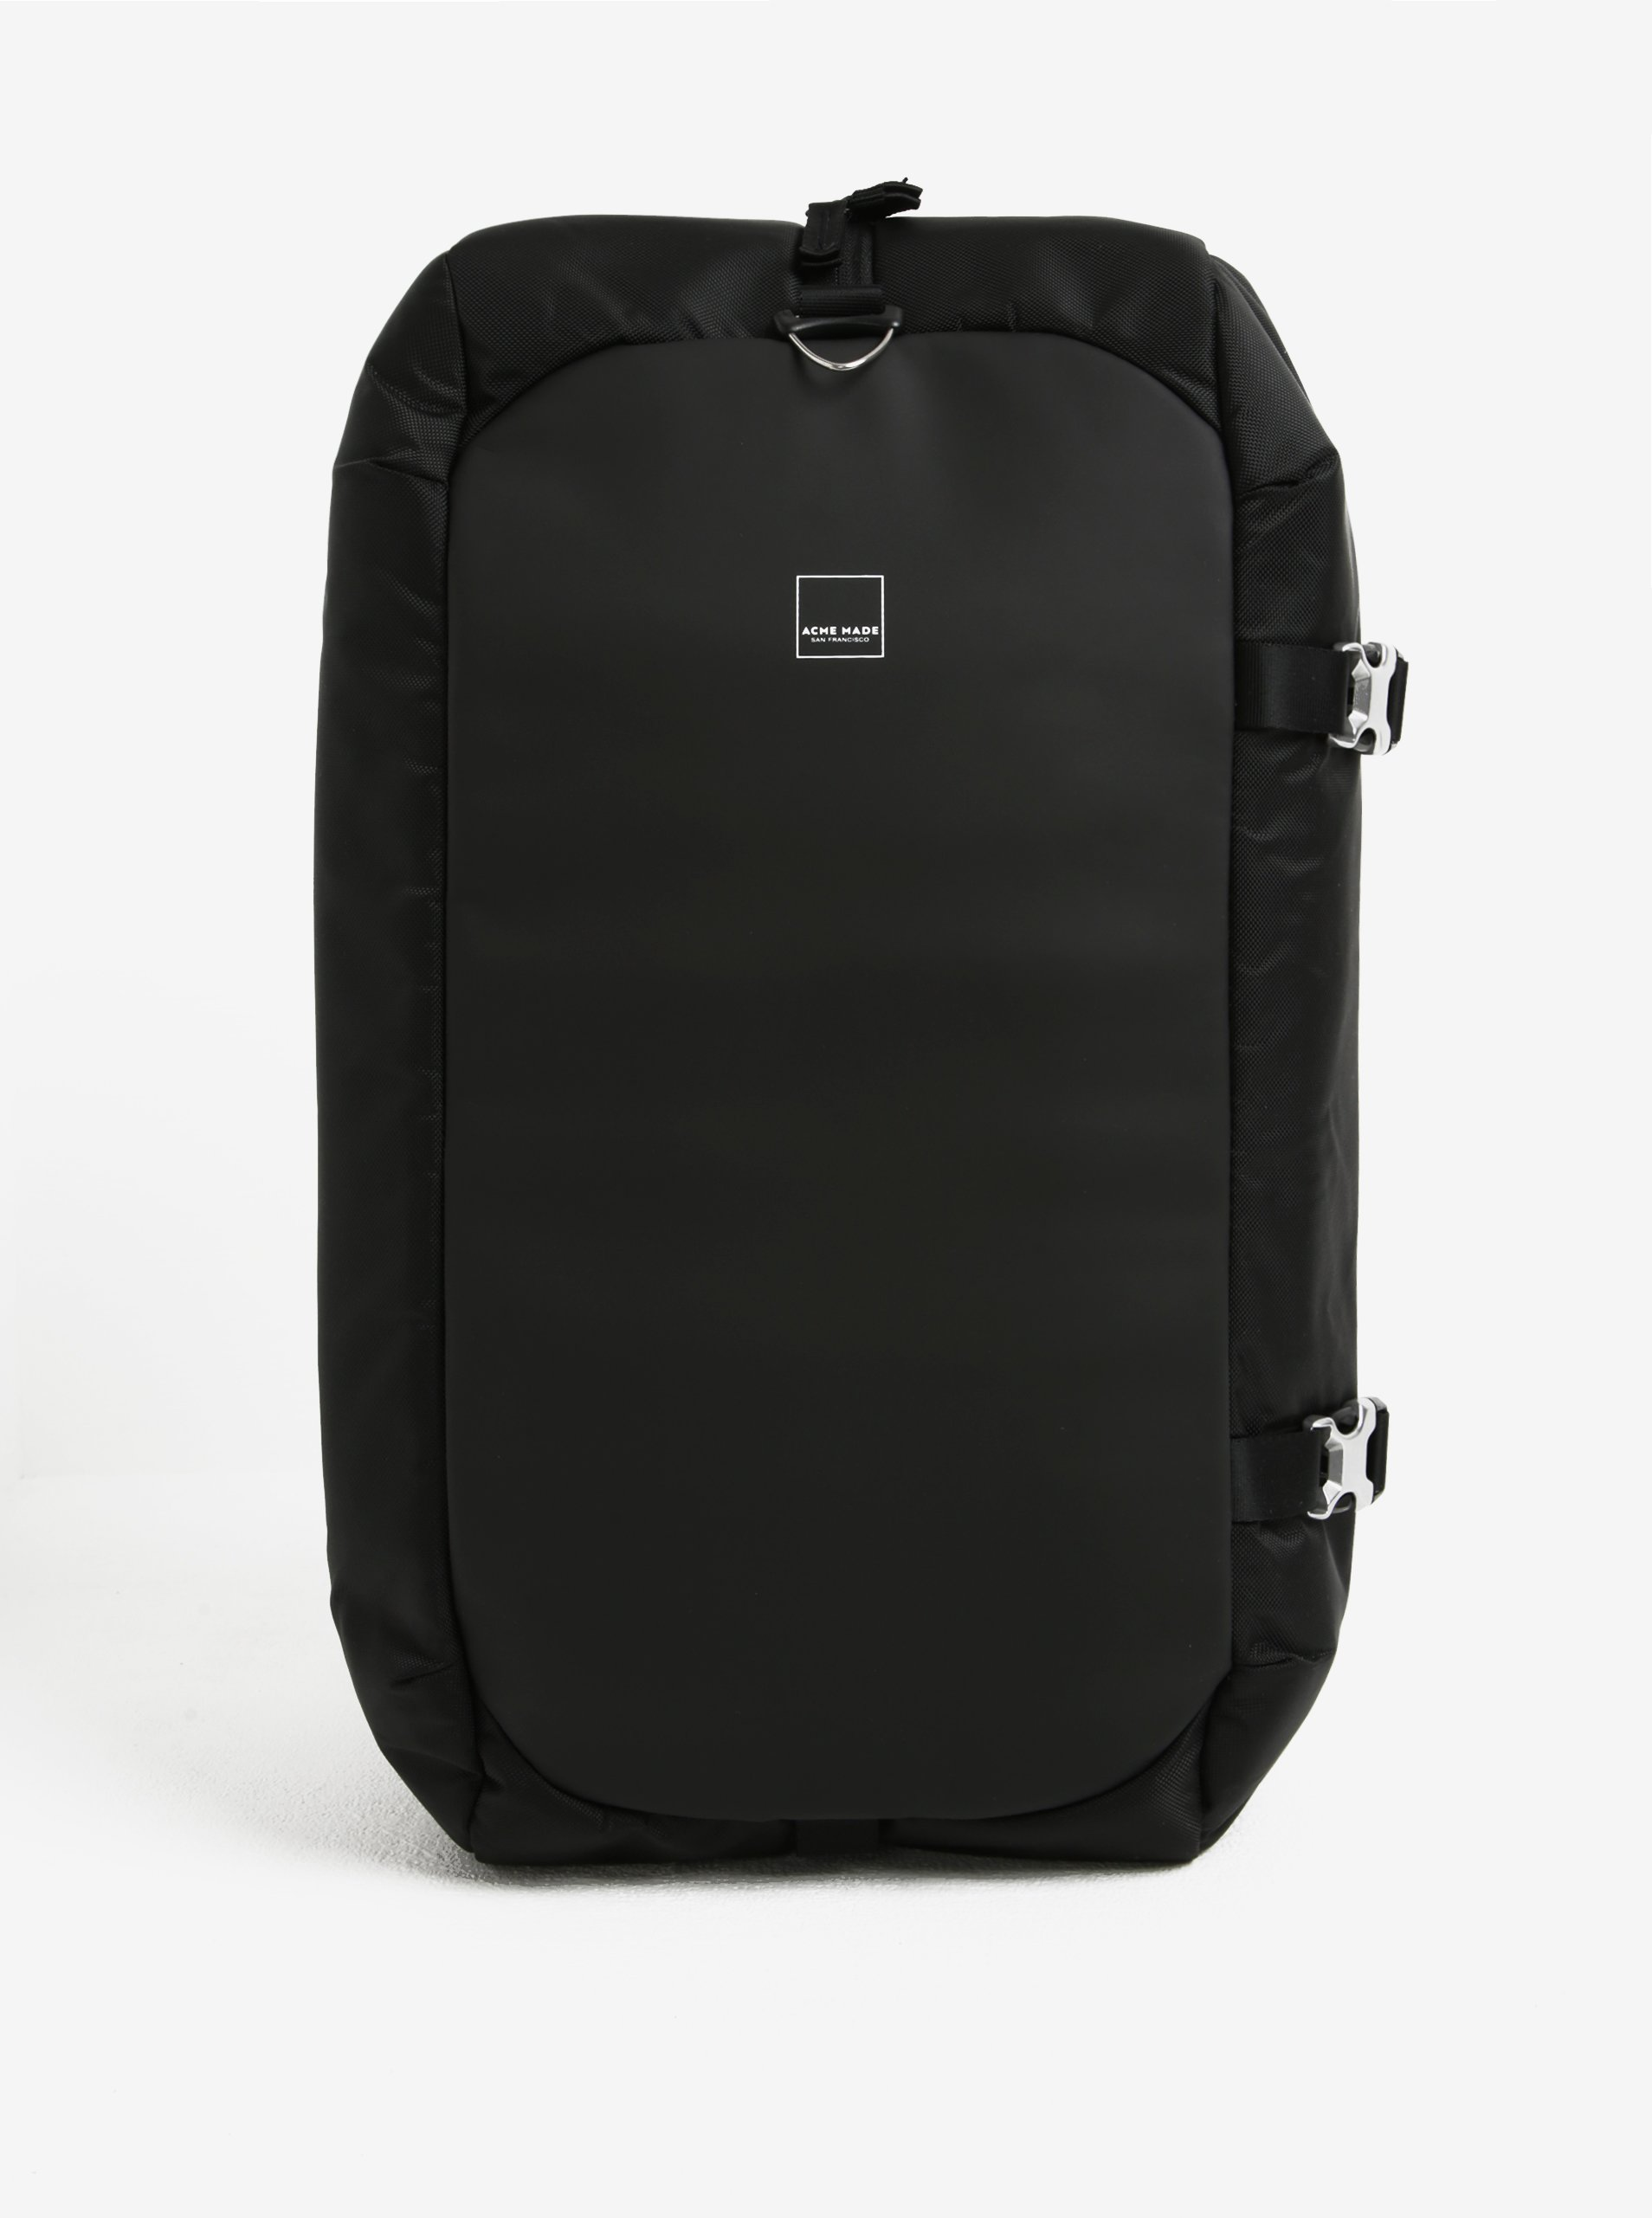 Černý batoh Acme Made Union Street Gym Backpack 15 l